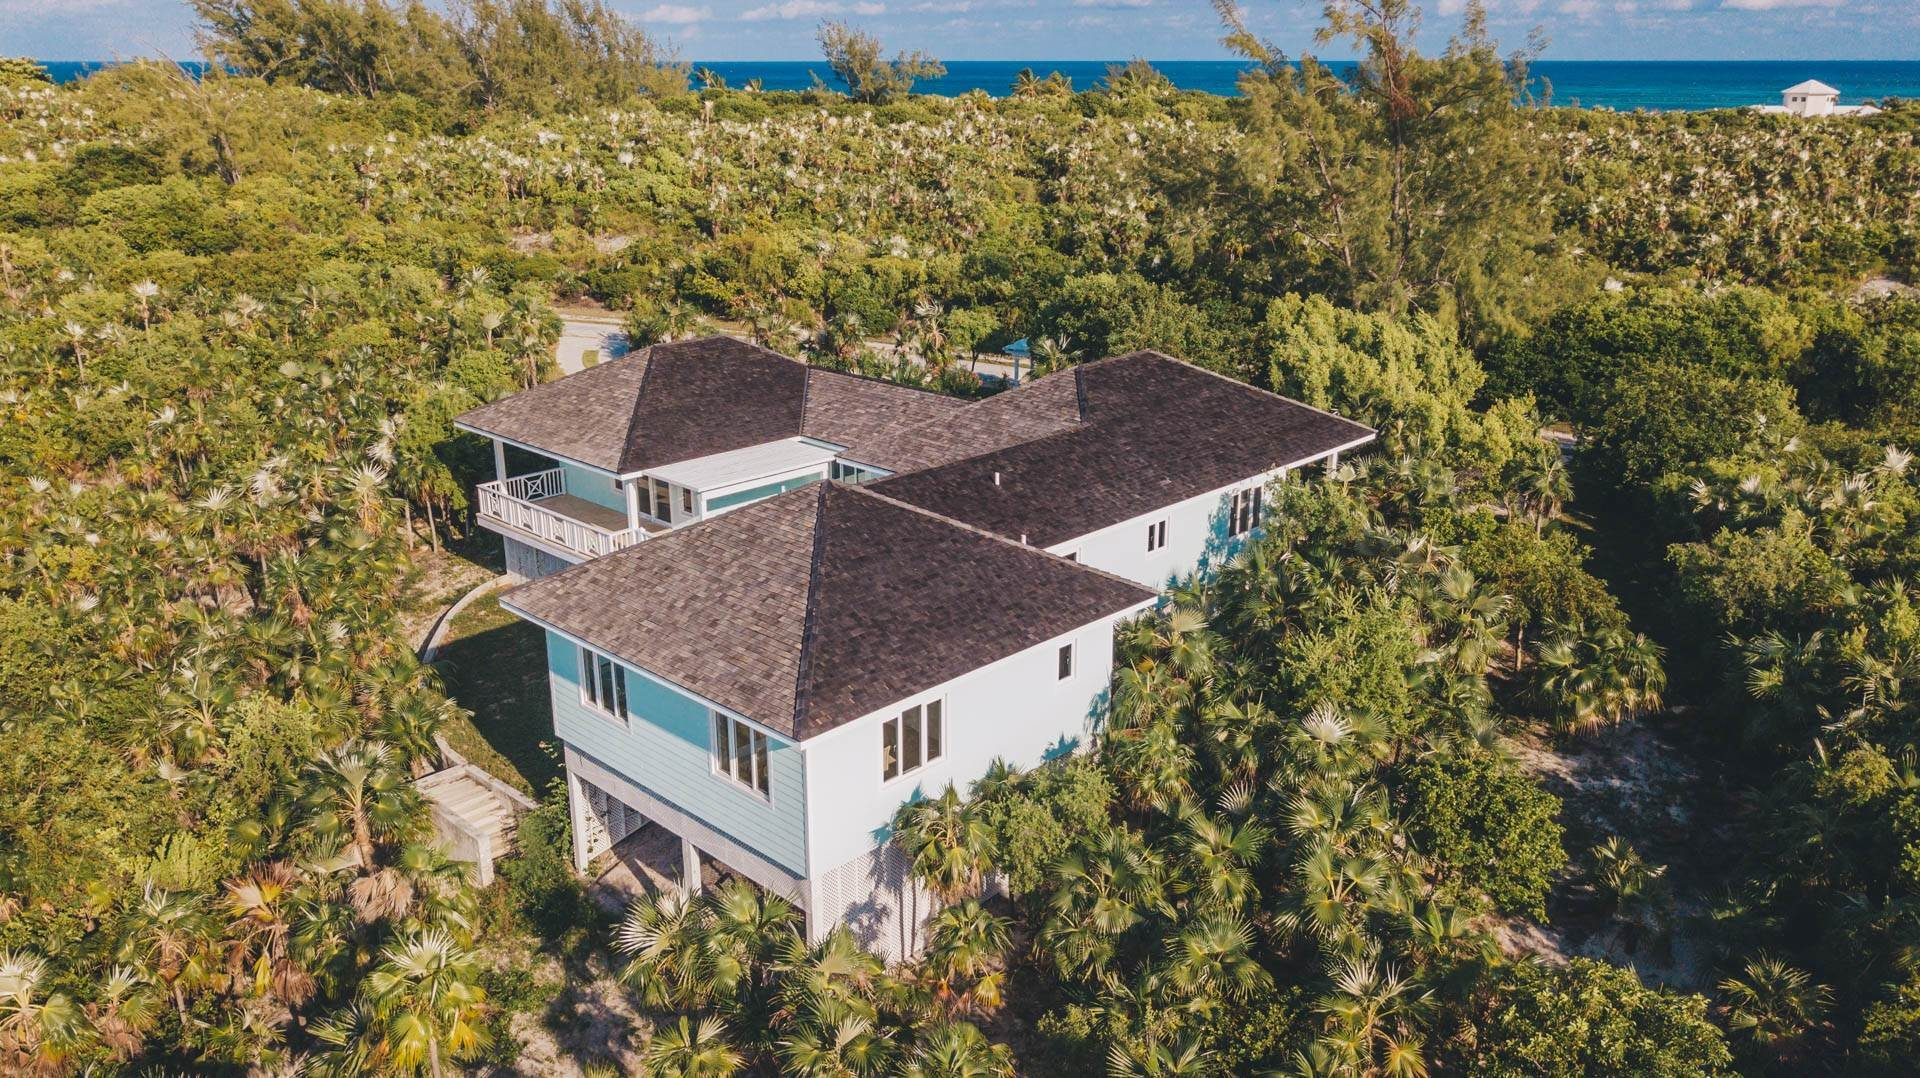 34. Single Family Homes for Sale at Savannah Sound Home - Windermere Island - MLS 44478 Windermere Island, Eleuthera, Bahamas